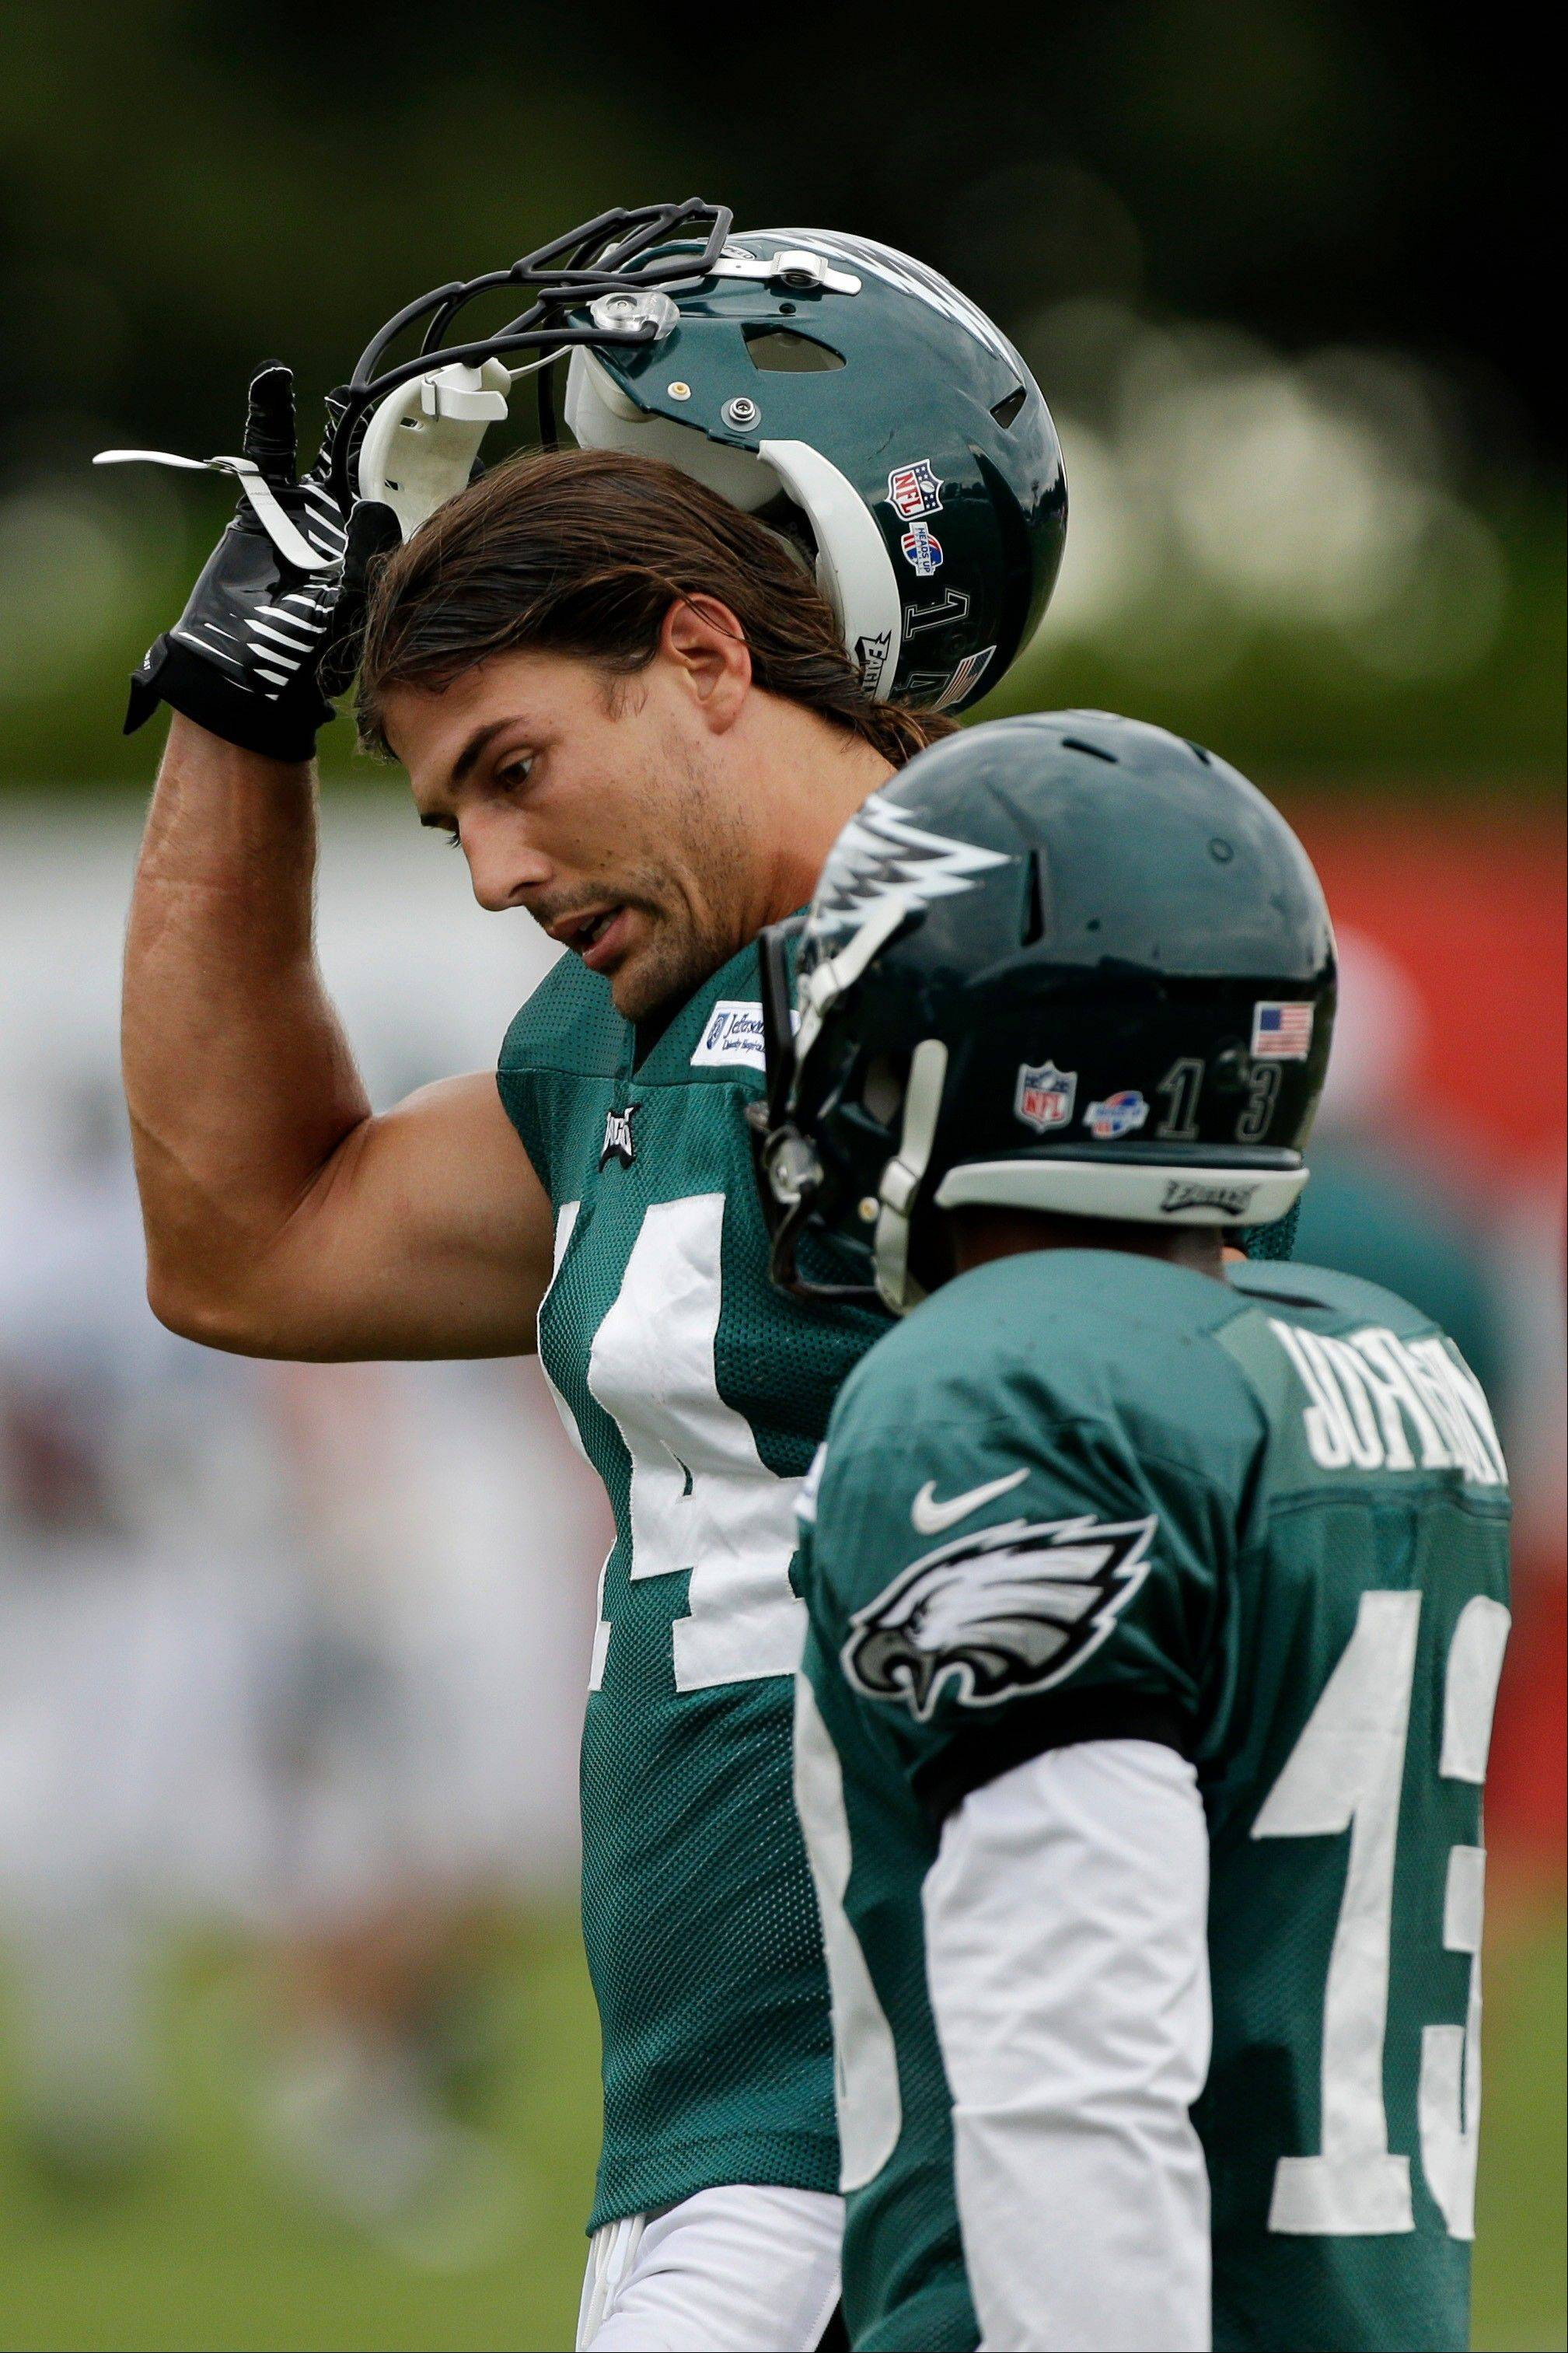 Philadelphia Eagles wide receivers Riley Cooper, left, and Damaris Johnson talk during a joint NFL football workout with the New England Patriots, Tuesday, Aug. 6, 2013, in Philadelphia.